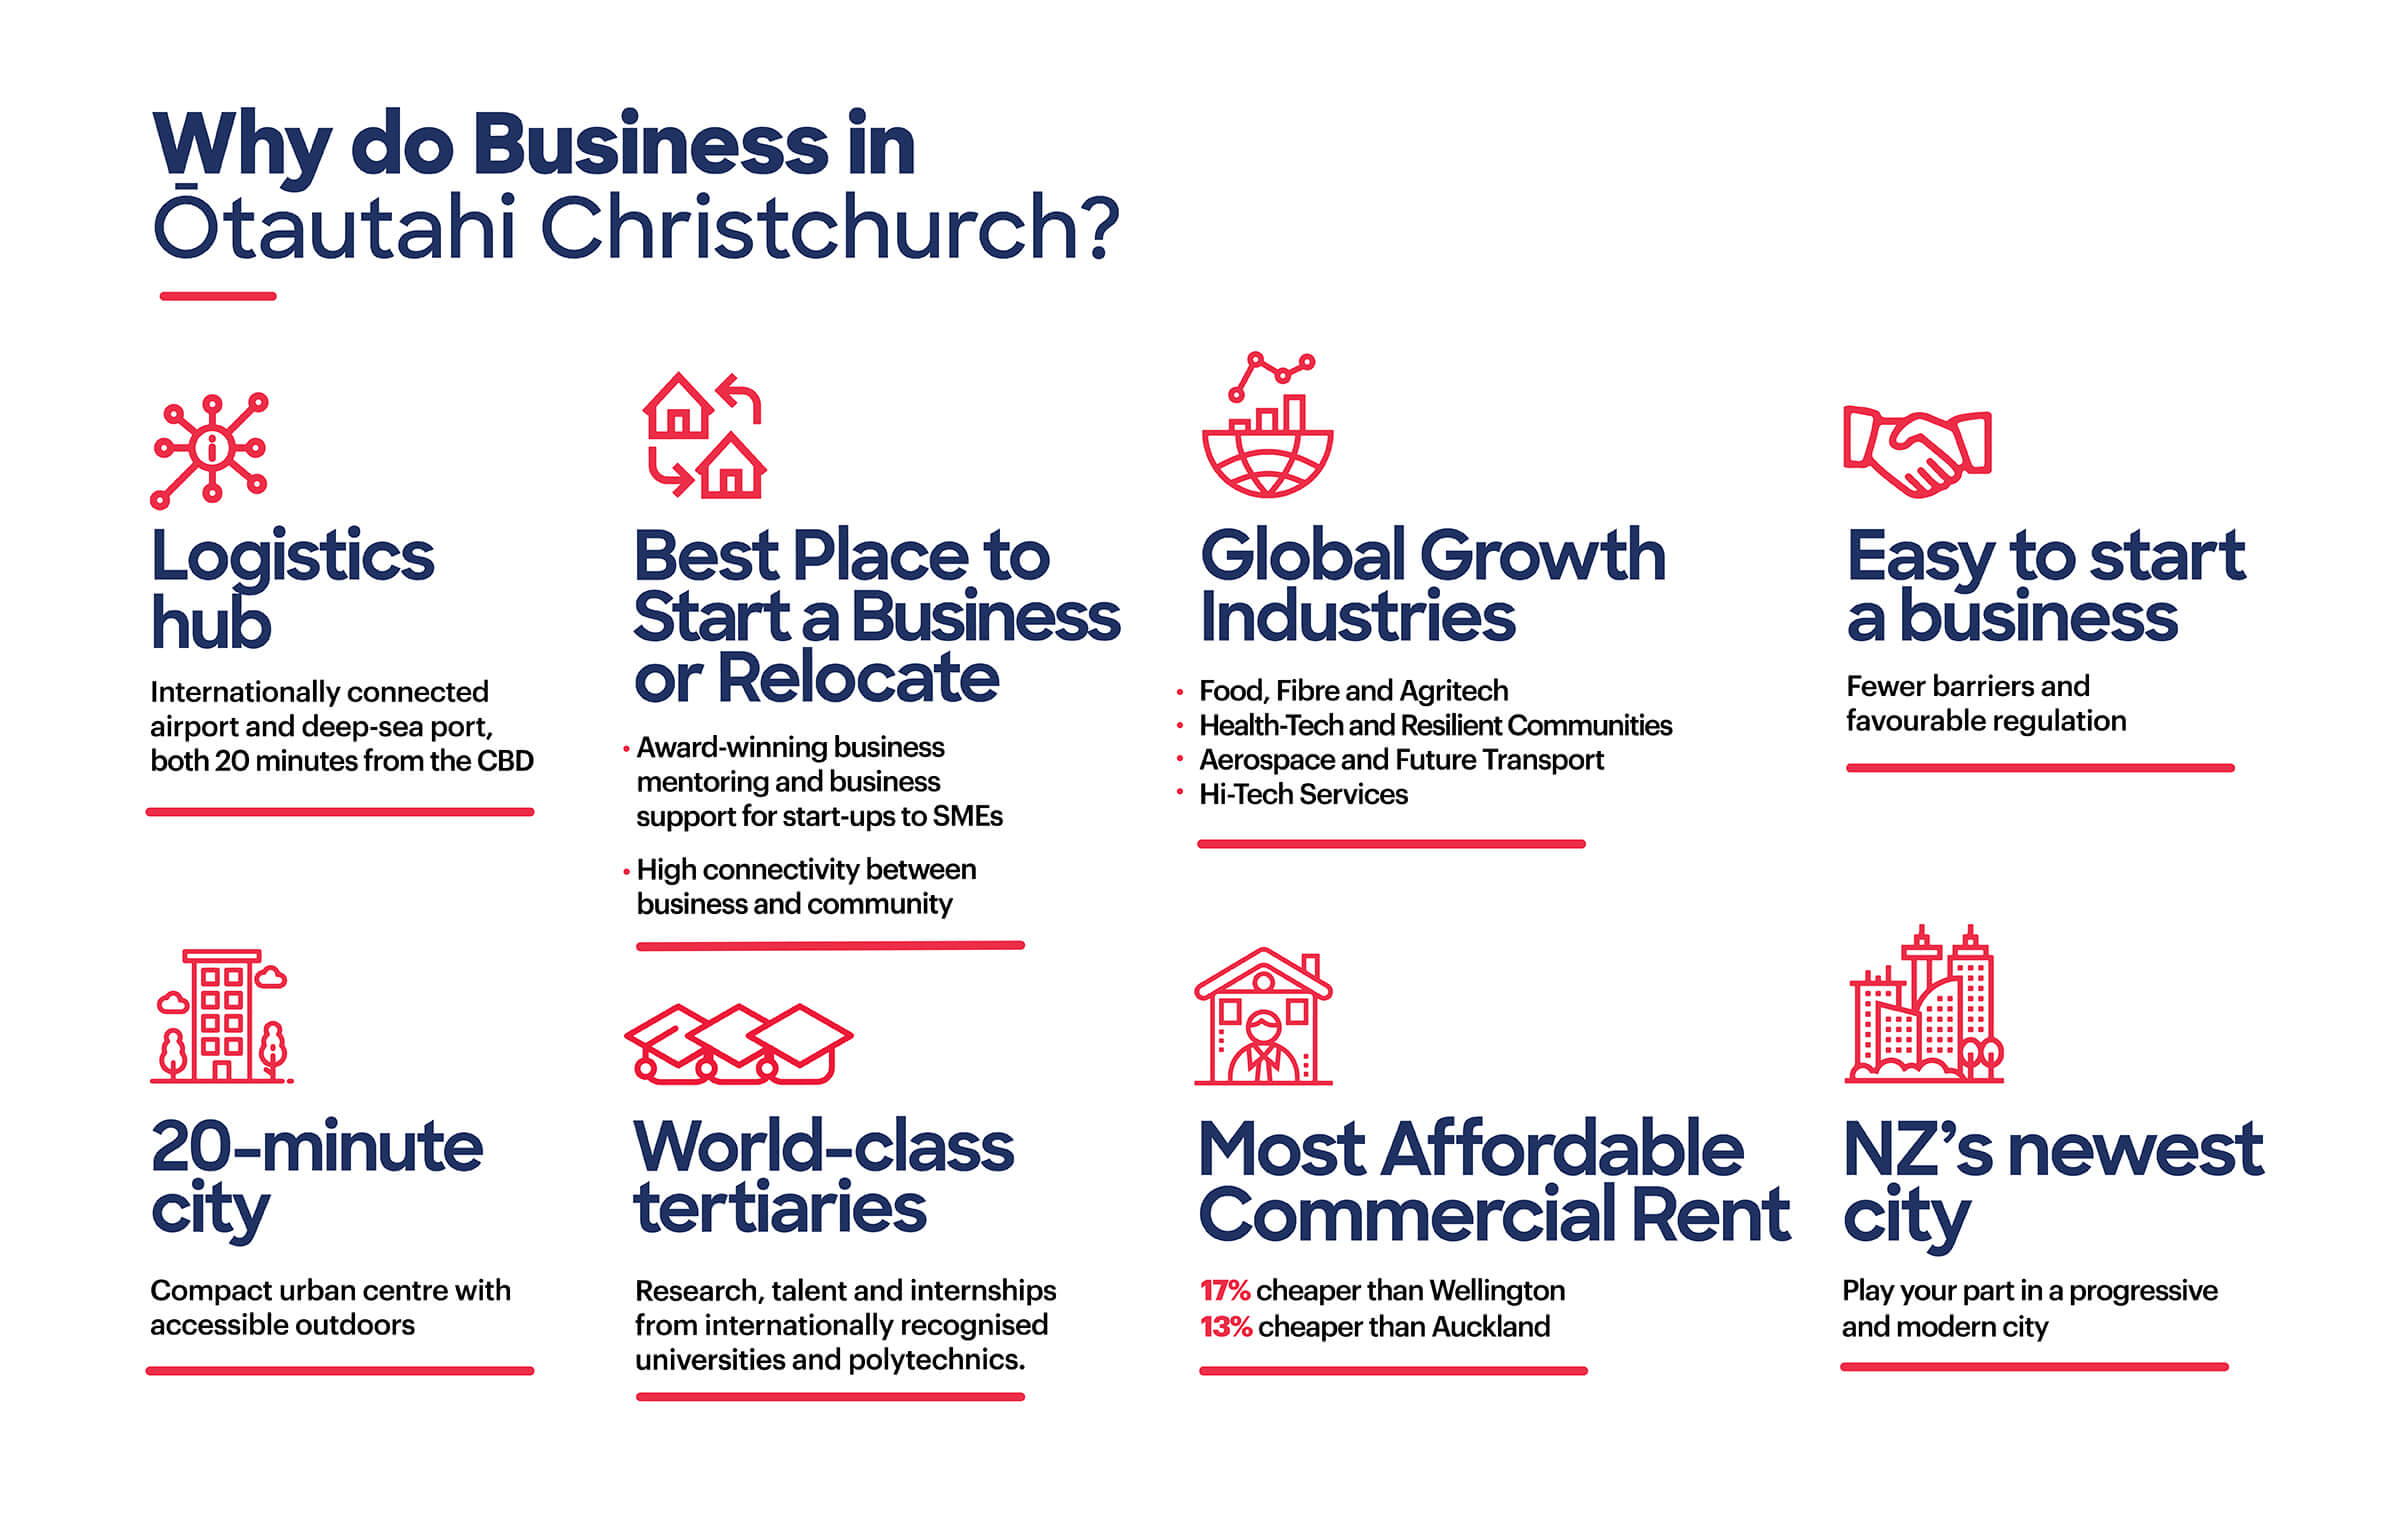 Why do Business in Ōtautahi Christchurch?